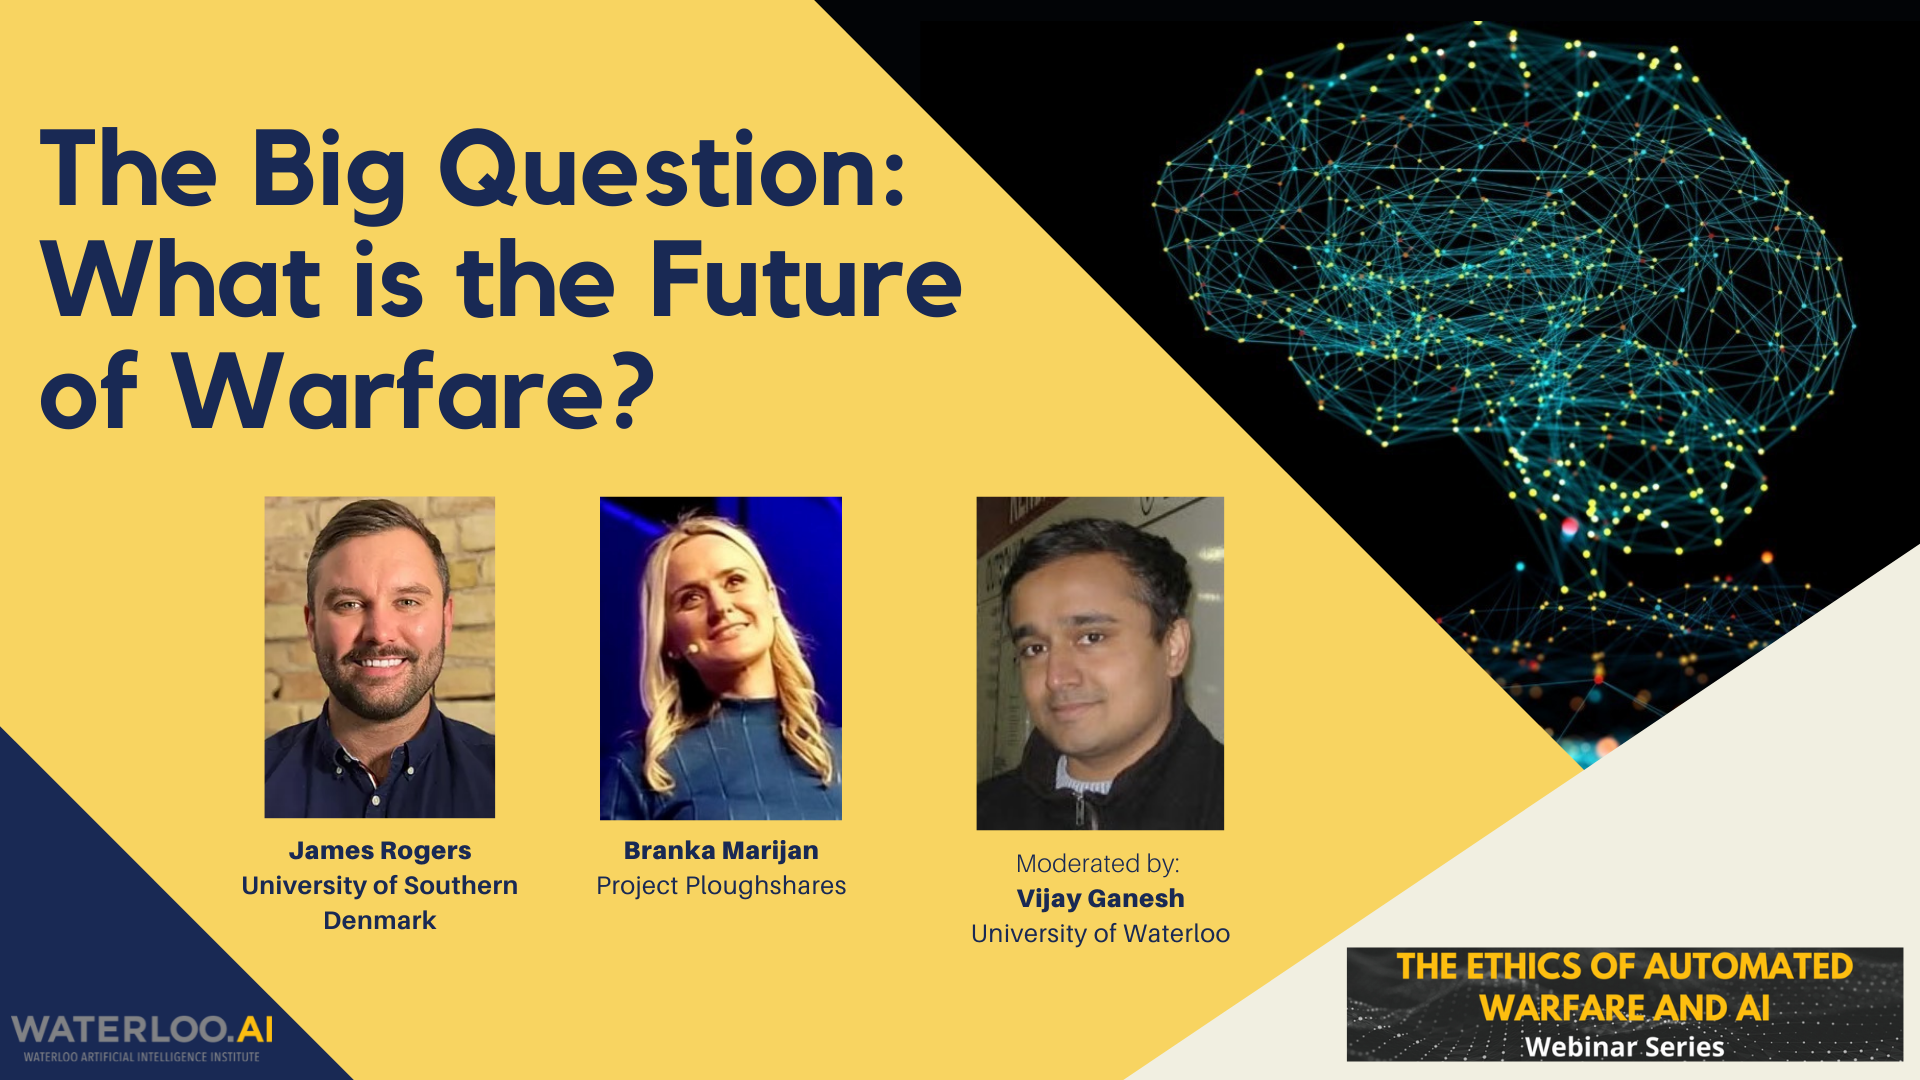 The big question: What is the future of warfare? Event poster with speakers James Rogers, Branka Marijan and Vijay Ganesh.